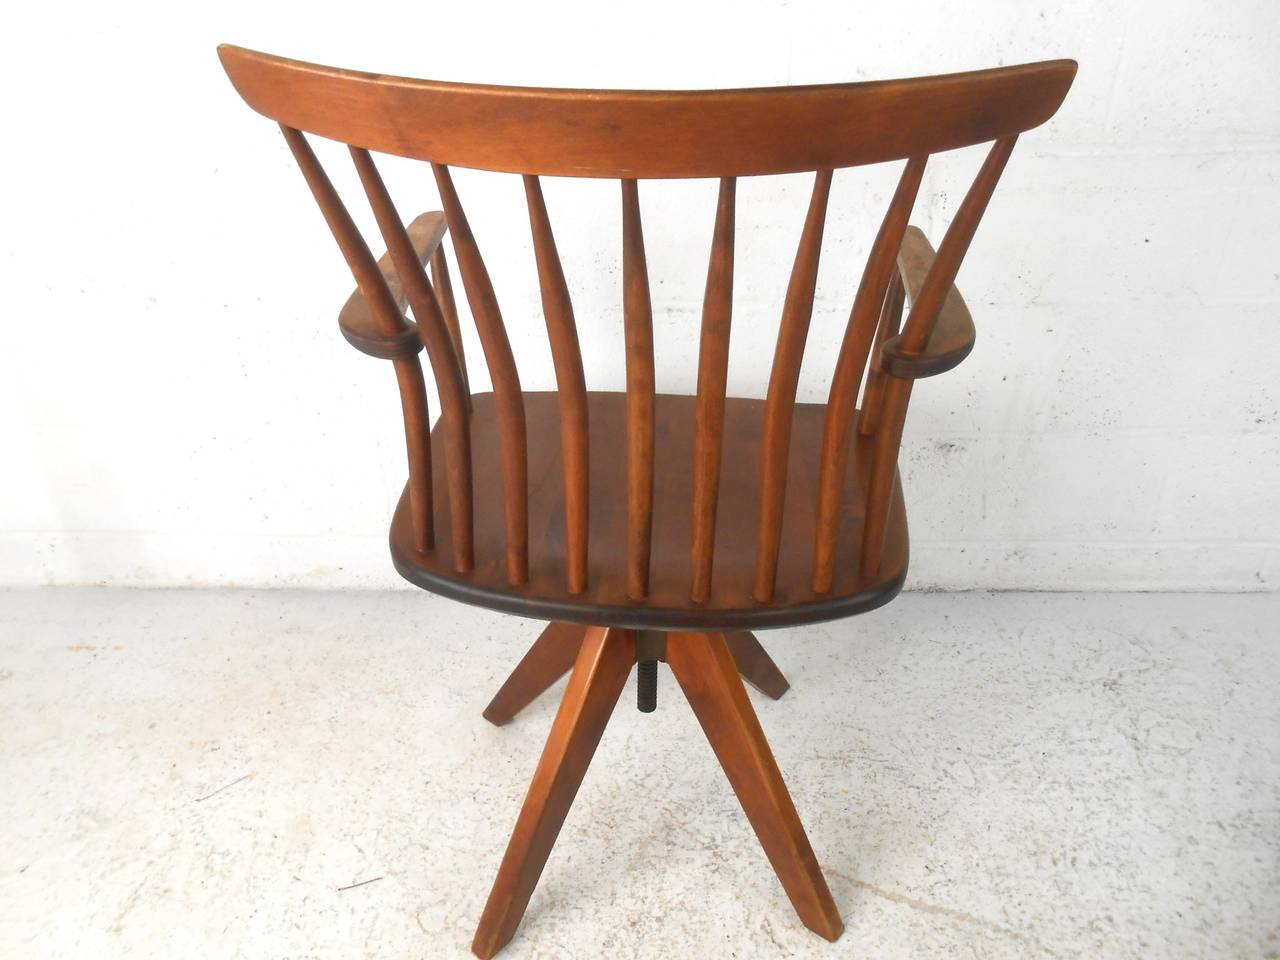 teak wood revolving chair table with 6 chairs unique mid century modern spoke back swivel desk